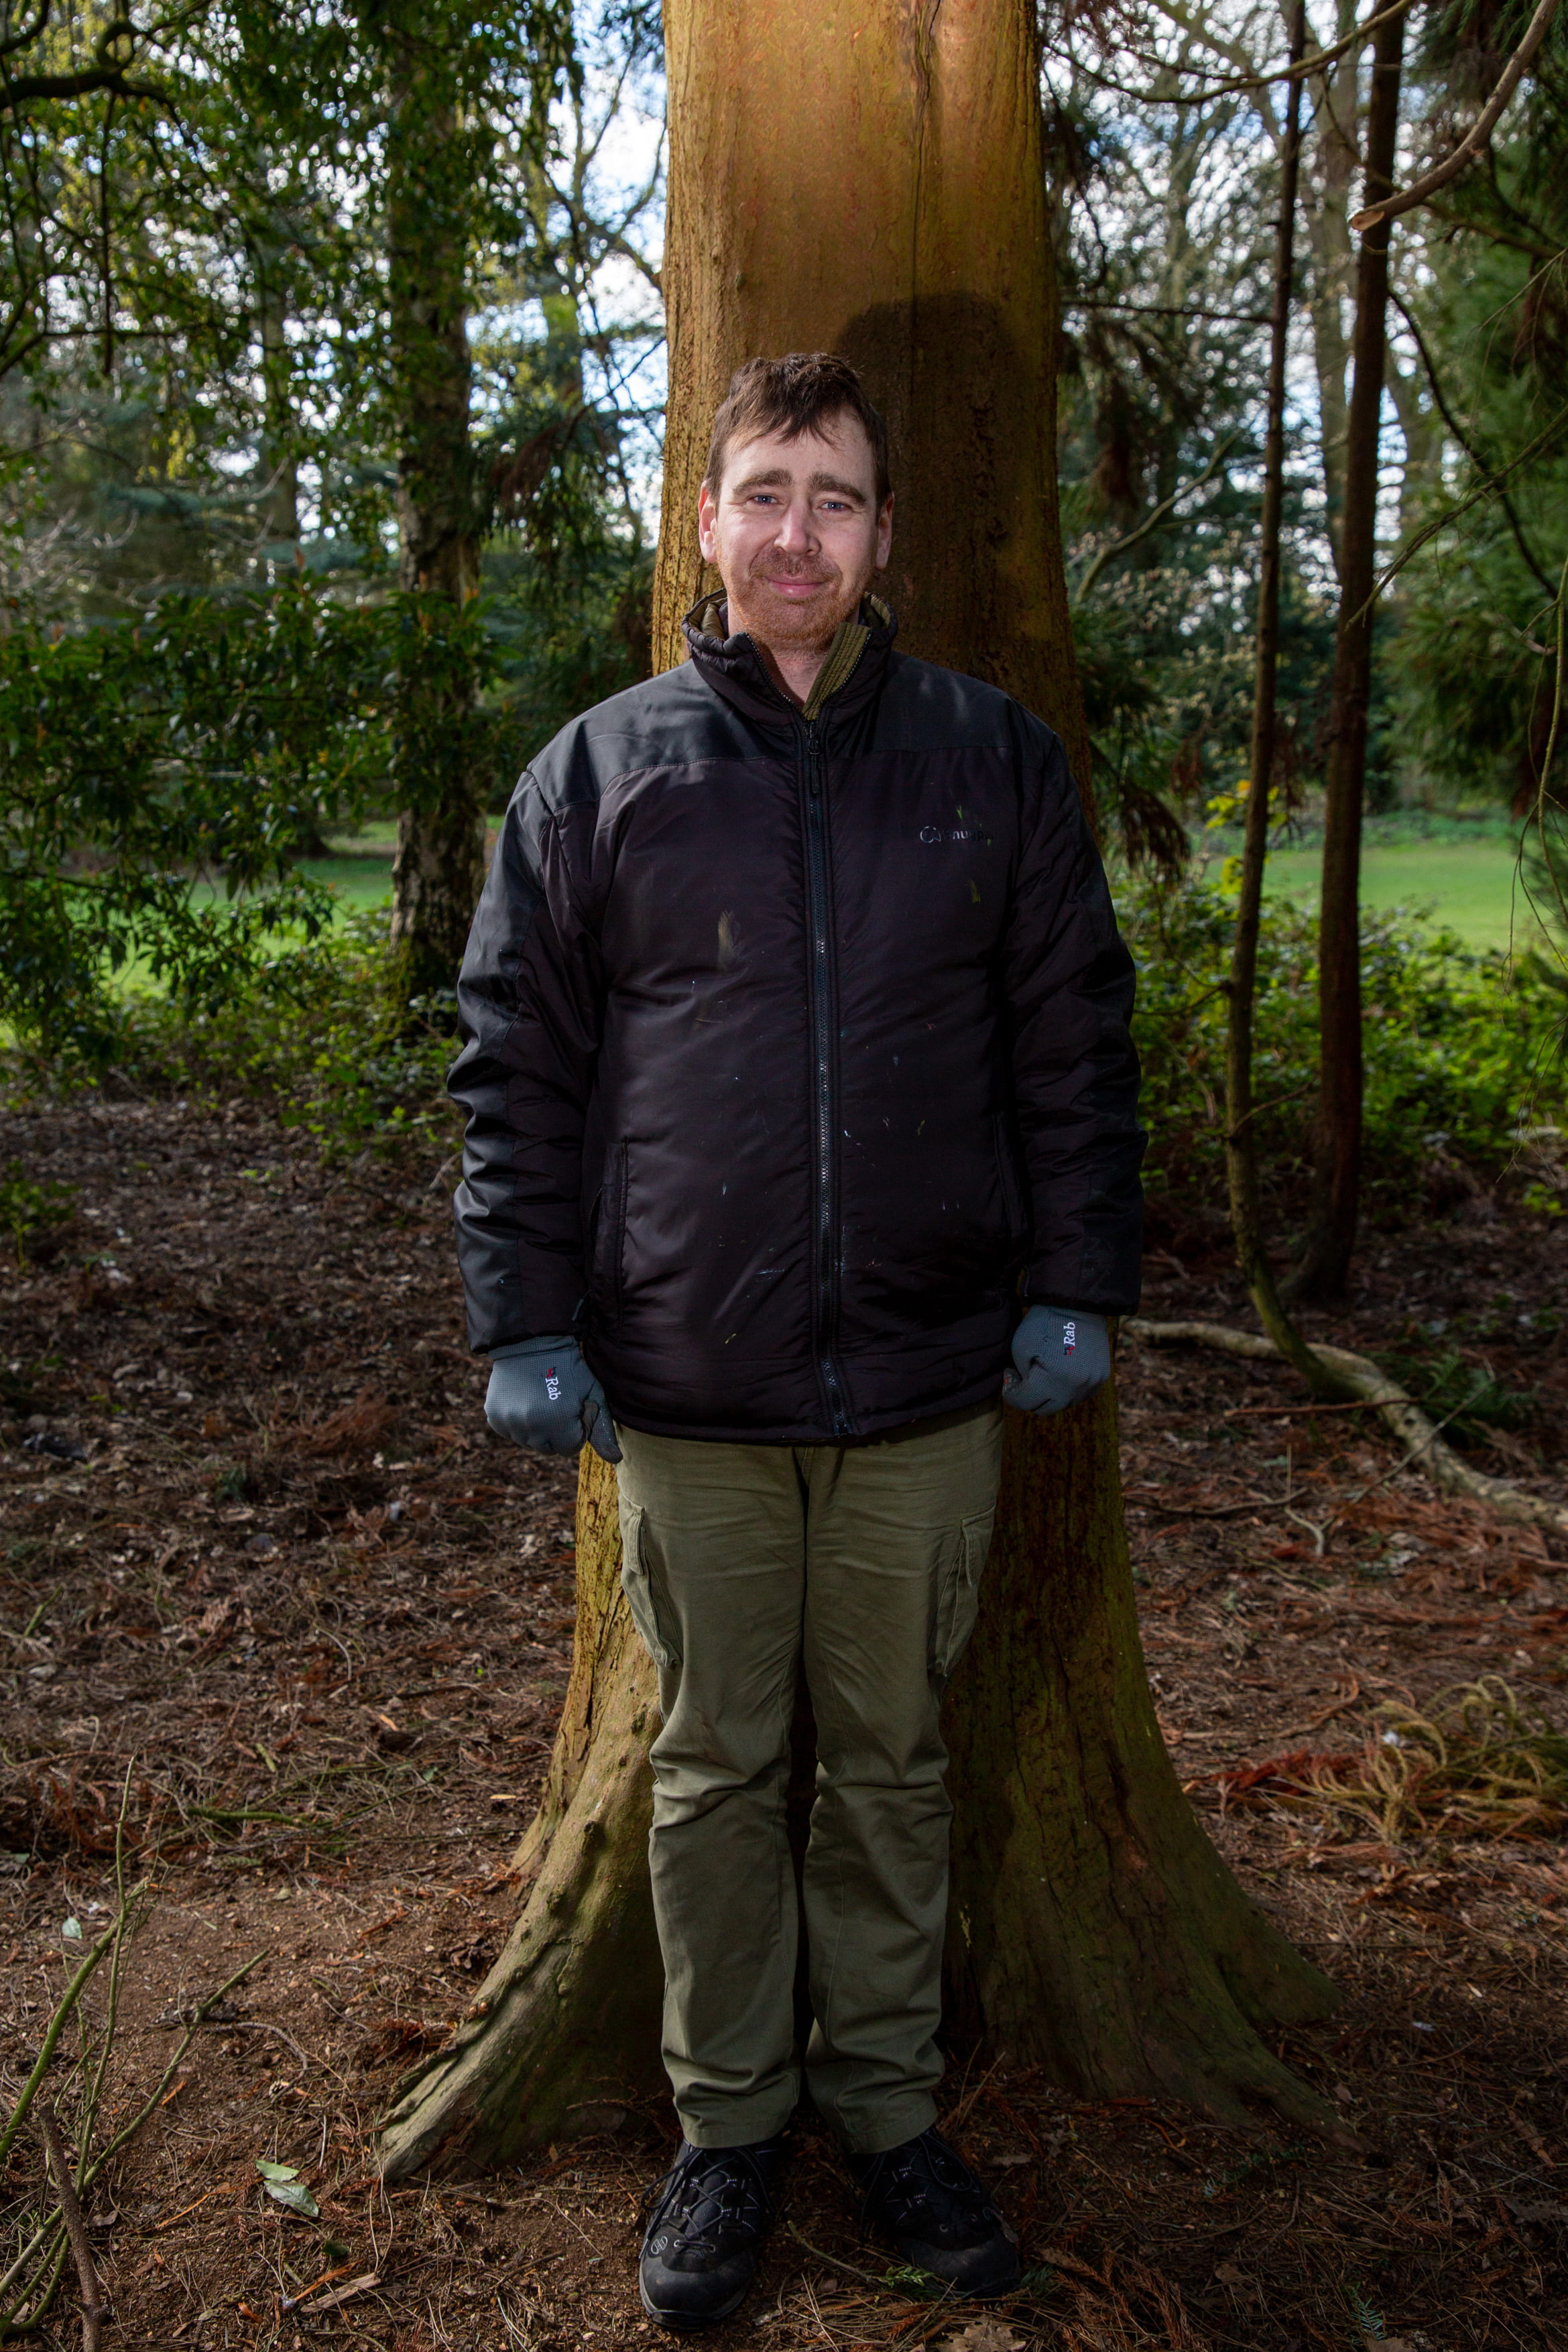 Photograph of veteran standing to attention in wooded area.